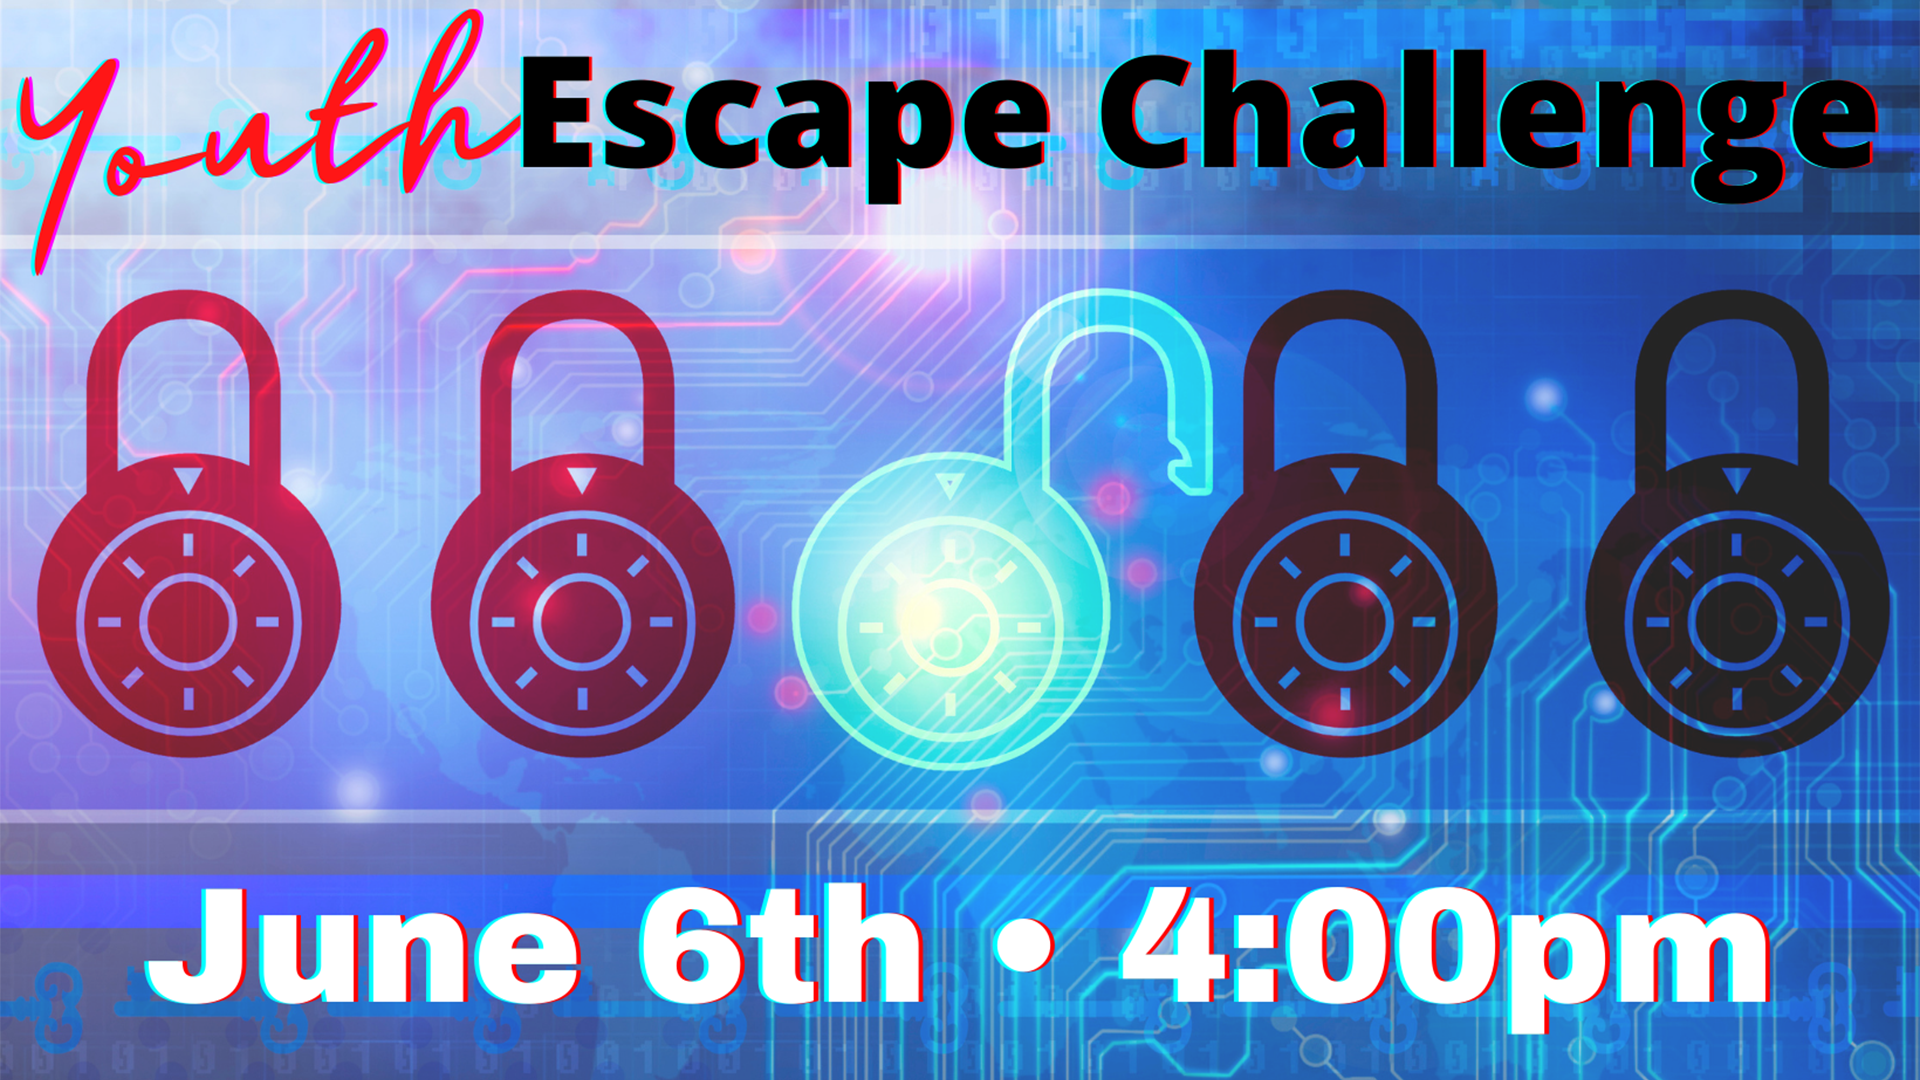 Youth Escape Challenge